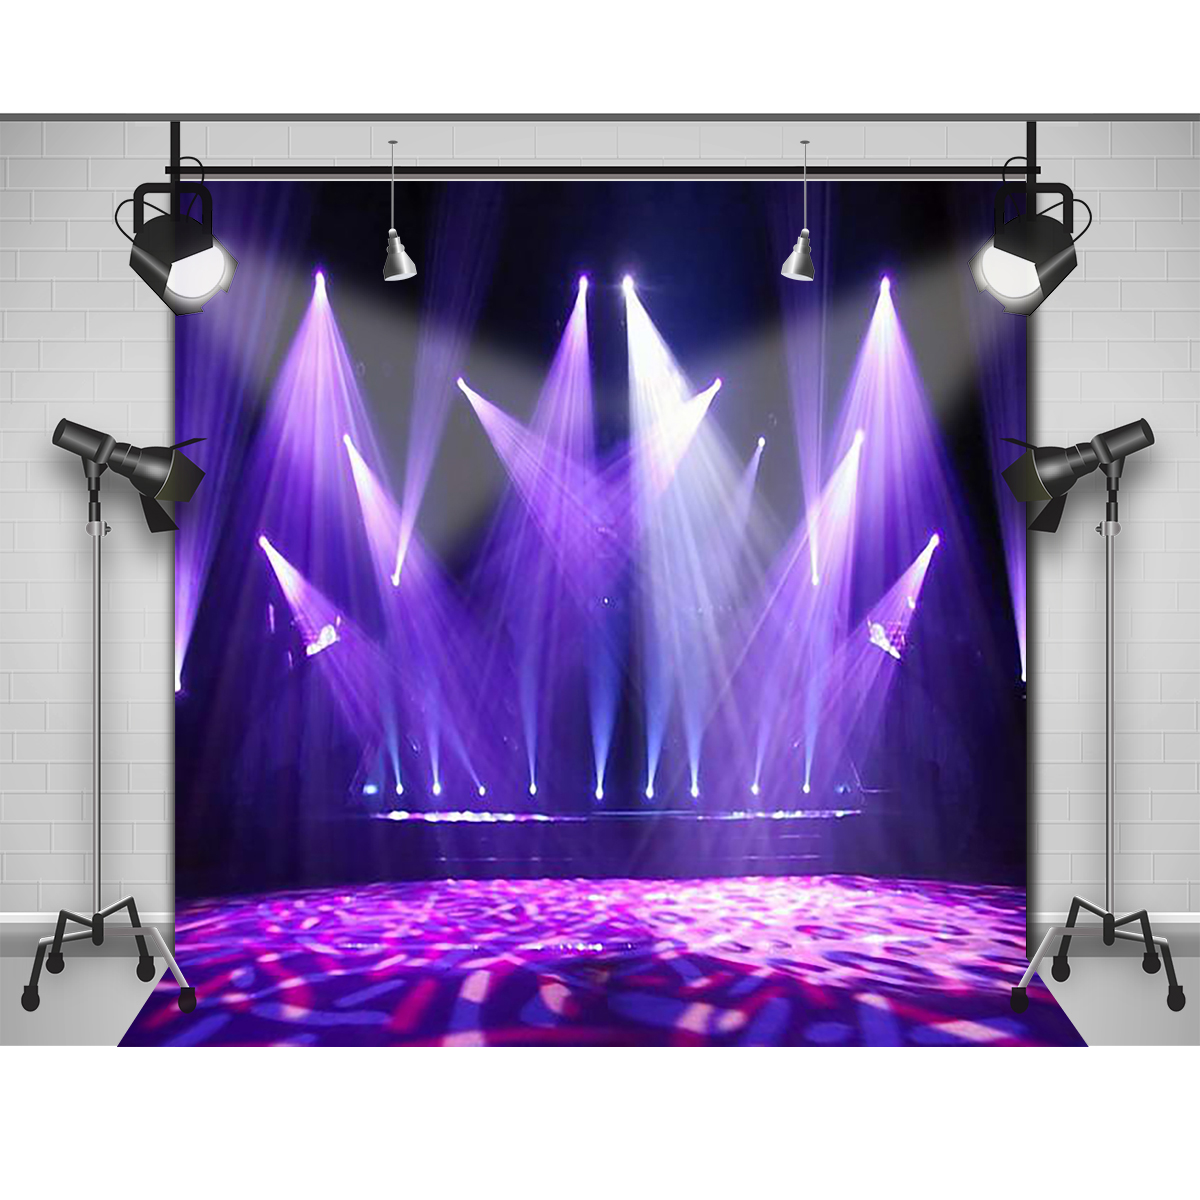 Bl blue stage curtains background - Aliexpress Com Buy Allenjoy Photographic Background Light Blue Fashion Stage Photography Fantasy High Quality Fondos Fotografia Private Party From